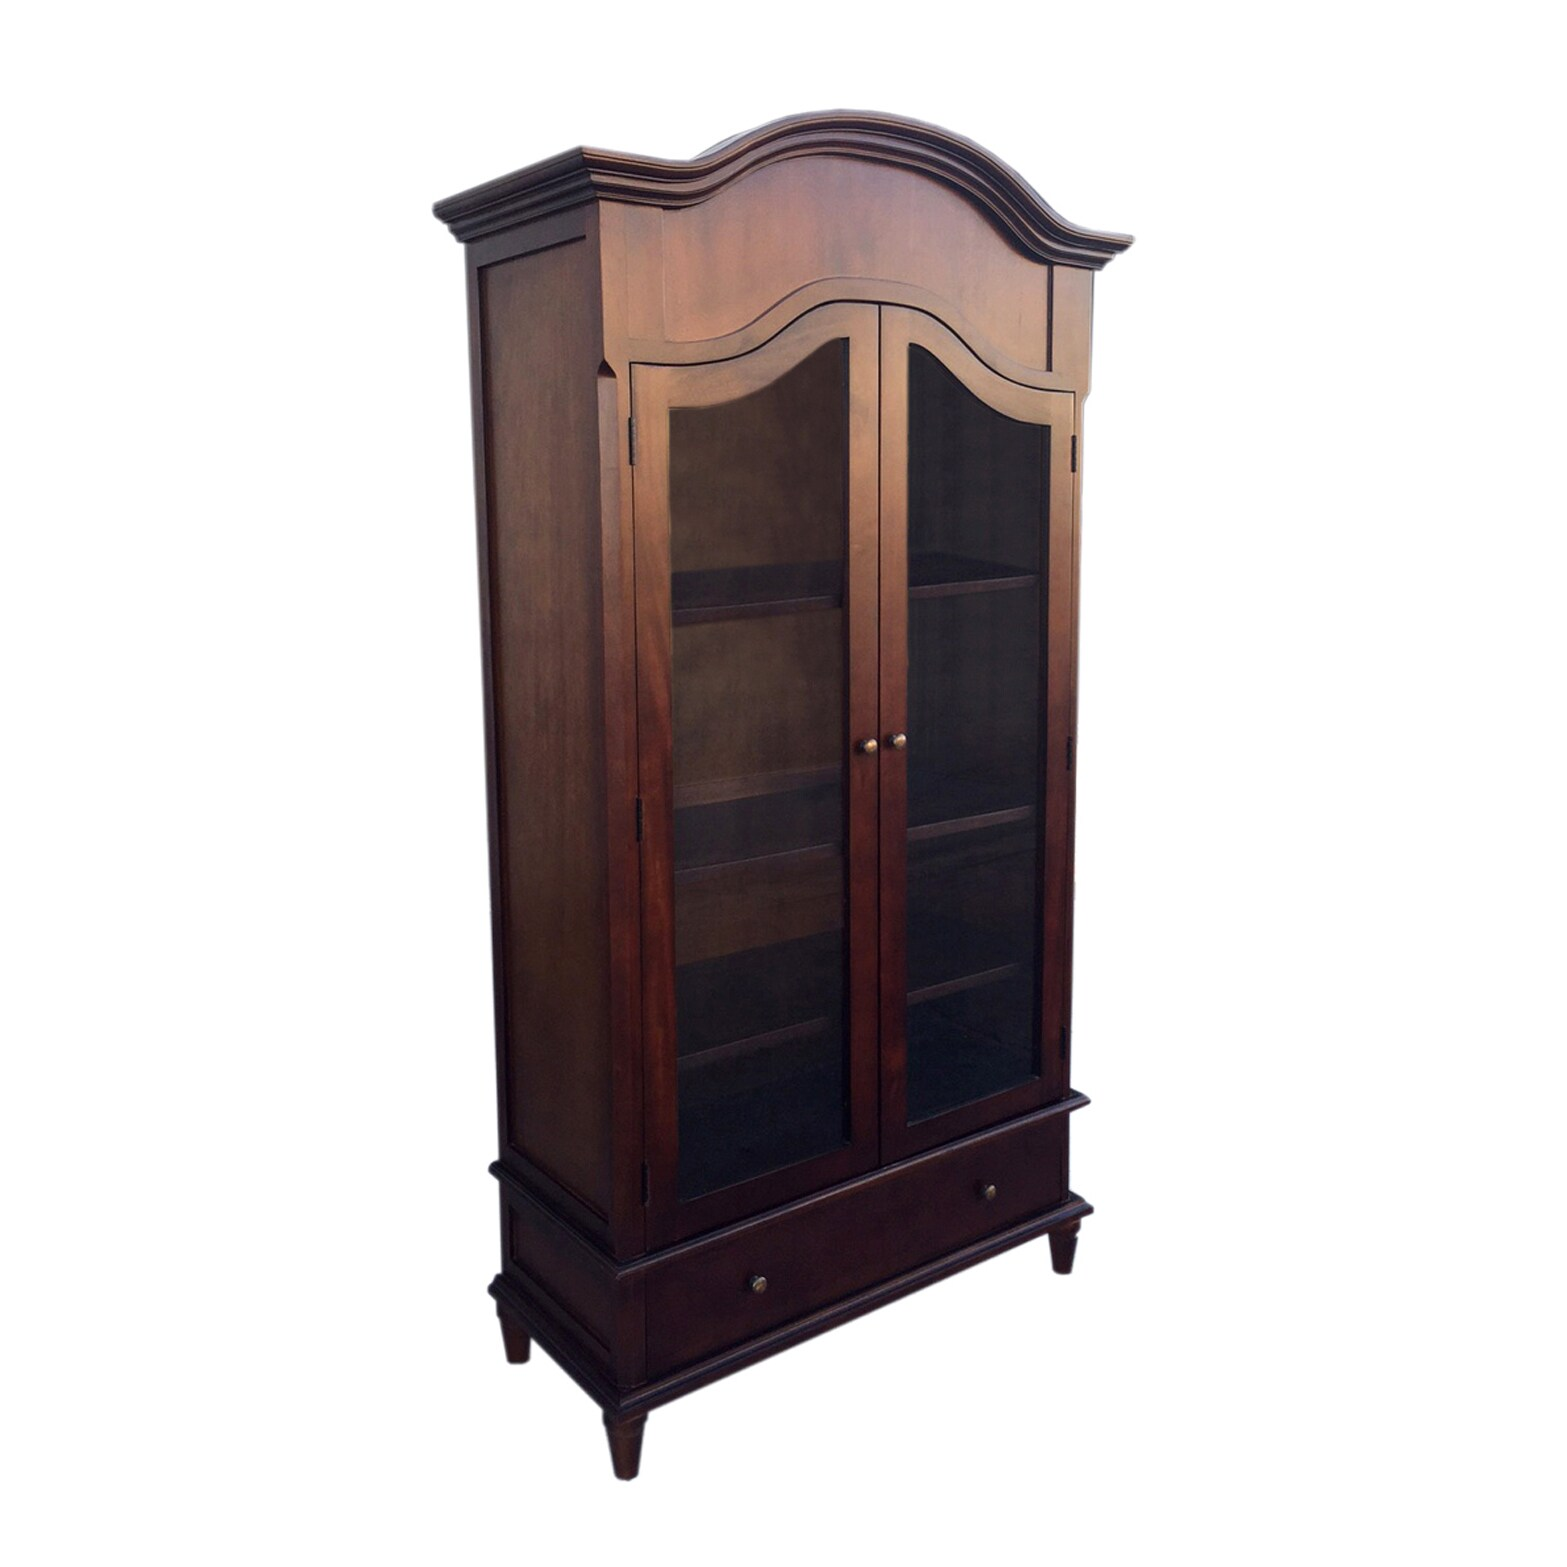 Handmade D Art Rococo Mahogany Wood And Glass Armoire (Indonesia)   Free  Shipping Today   Overstock   17170457